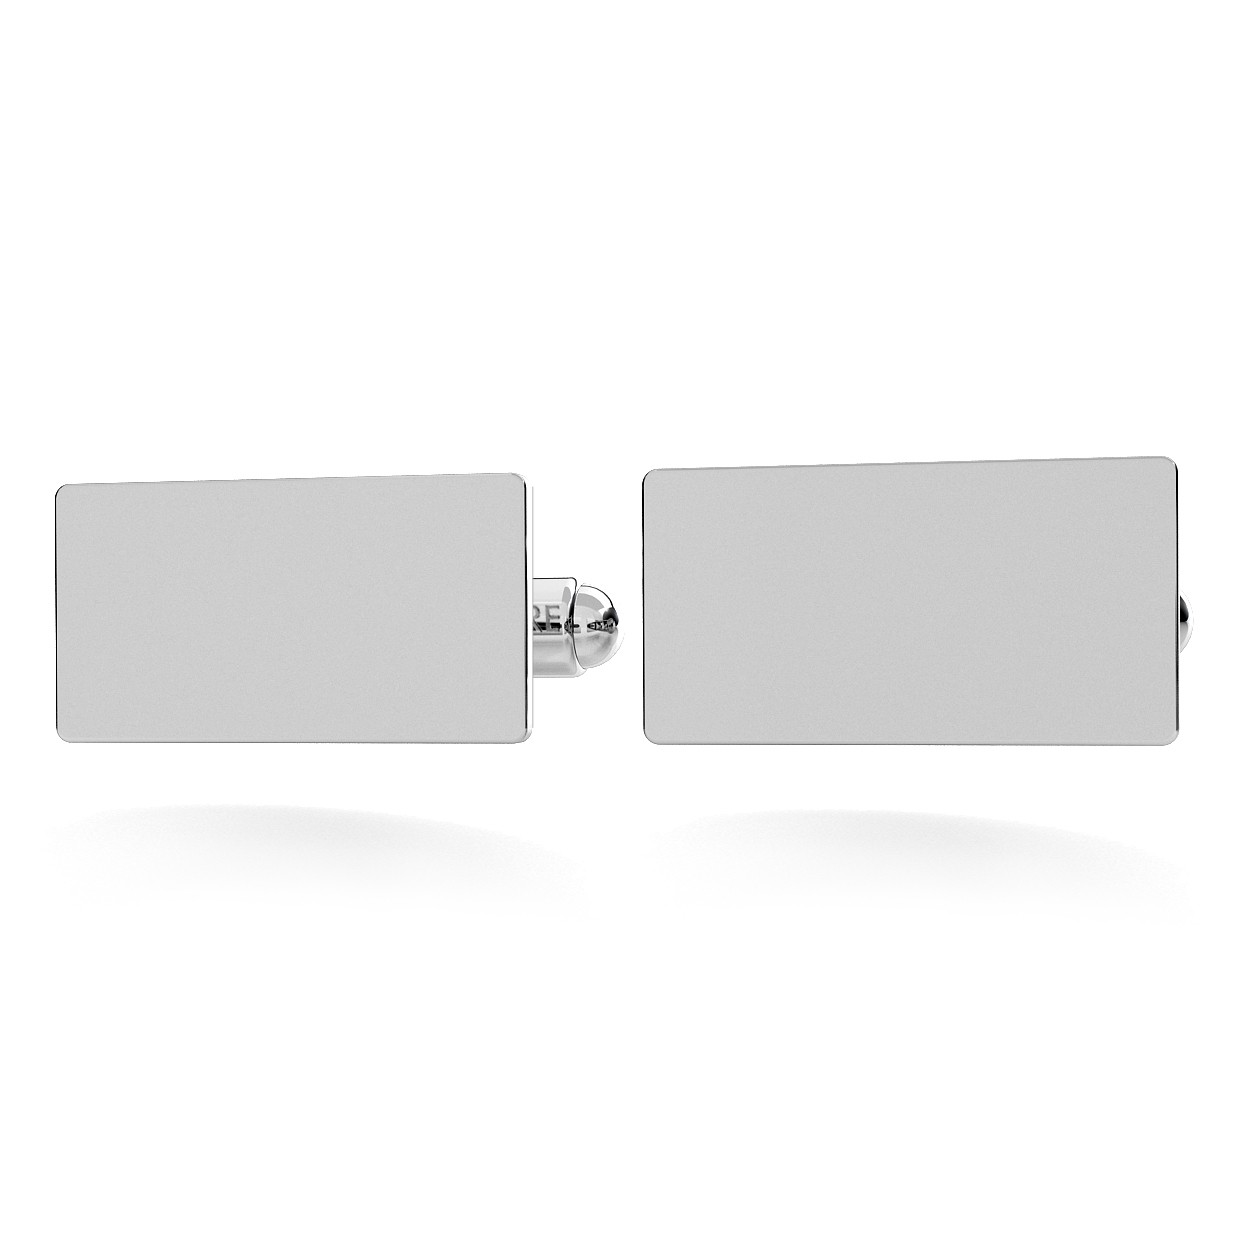 RECTANGLE CUFFLINKS WITH ENGRAVE, SILVER 925, RHODIUM OR GOLD PLATED